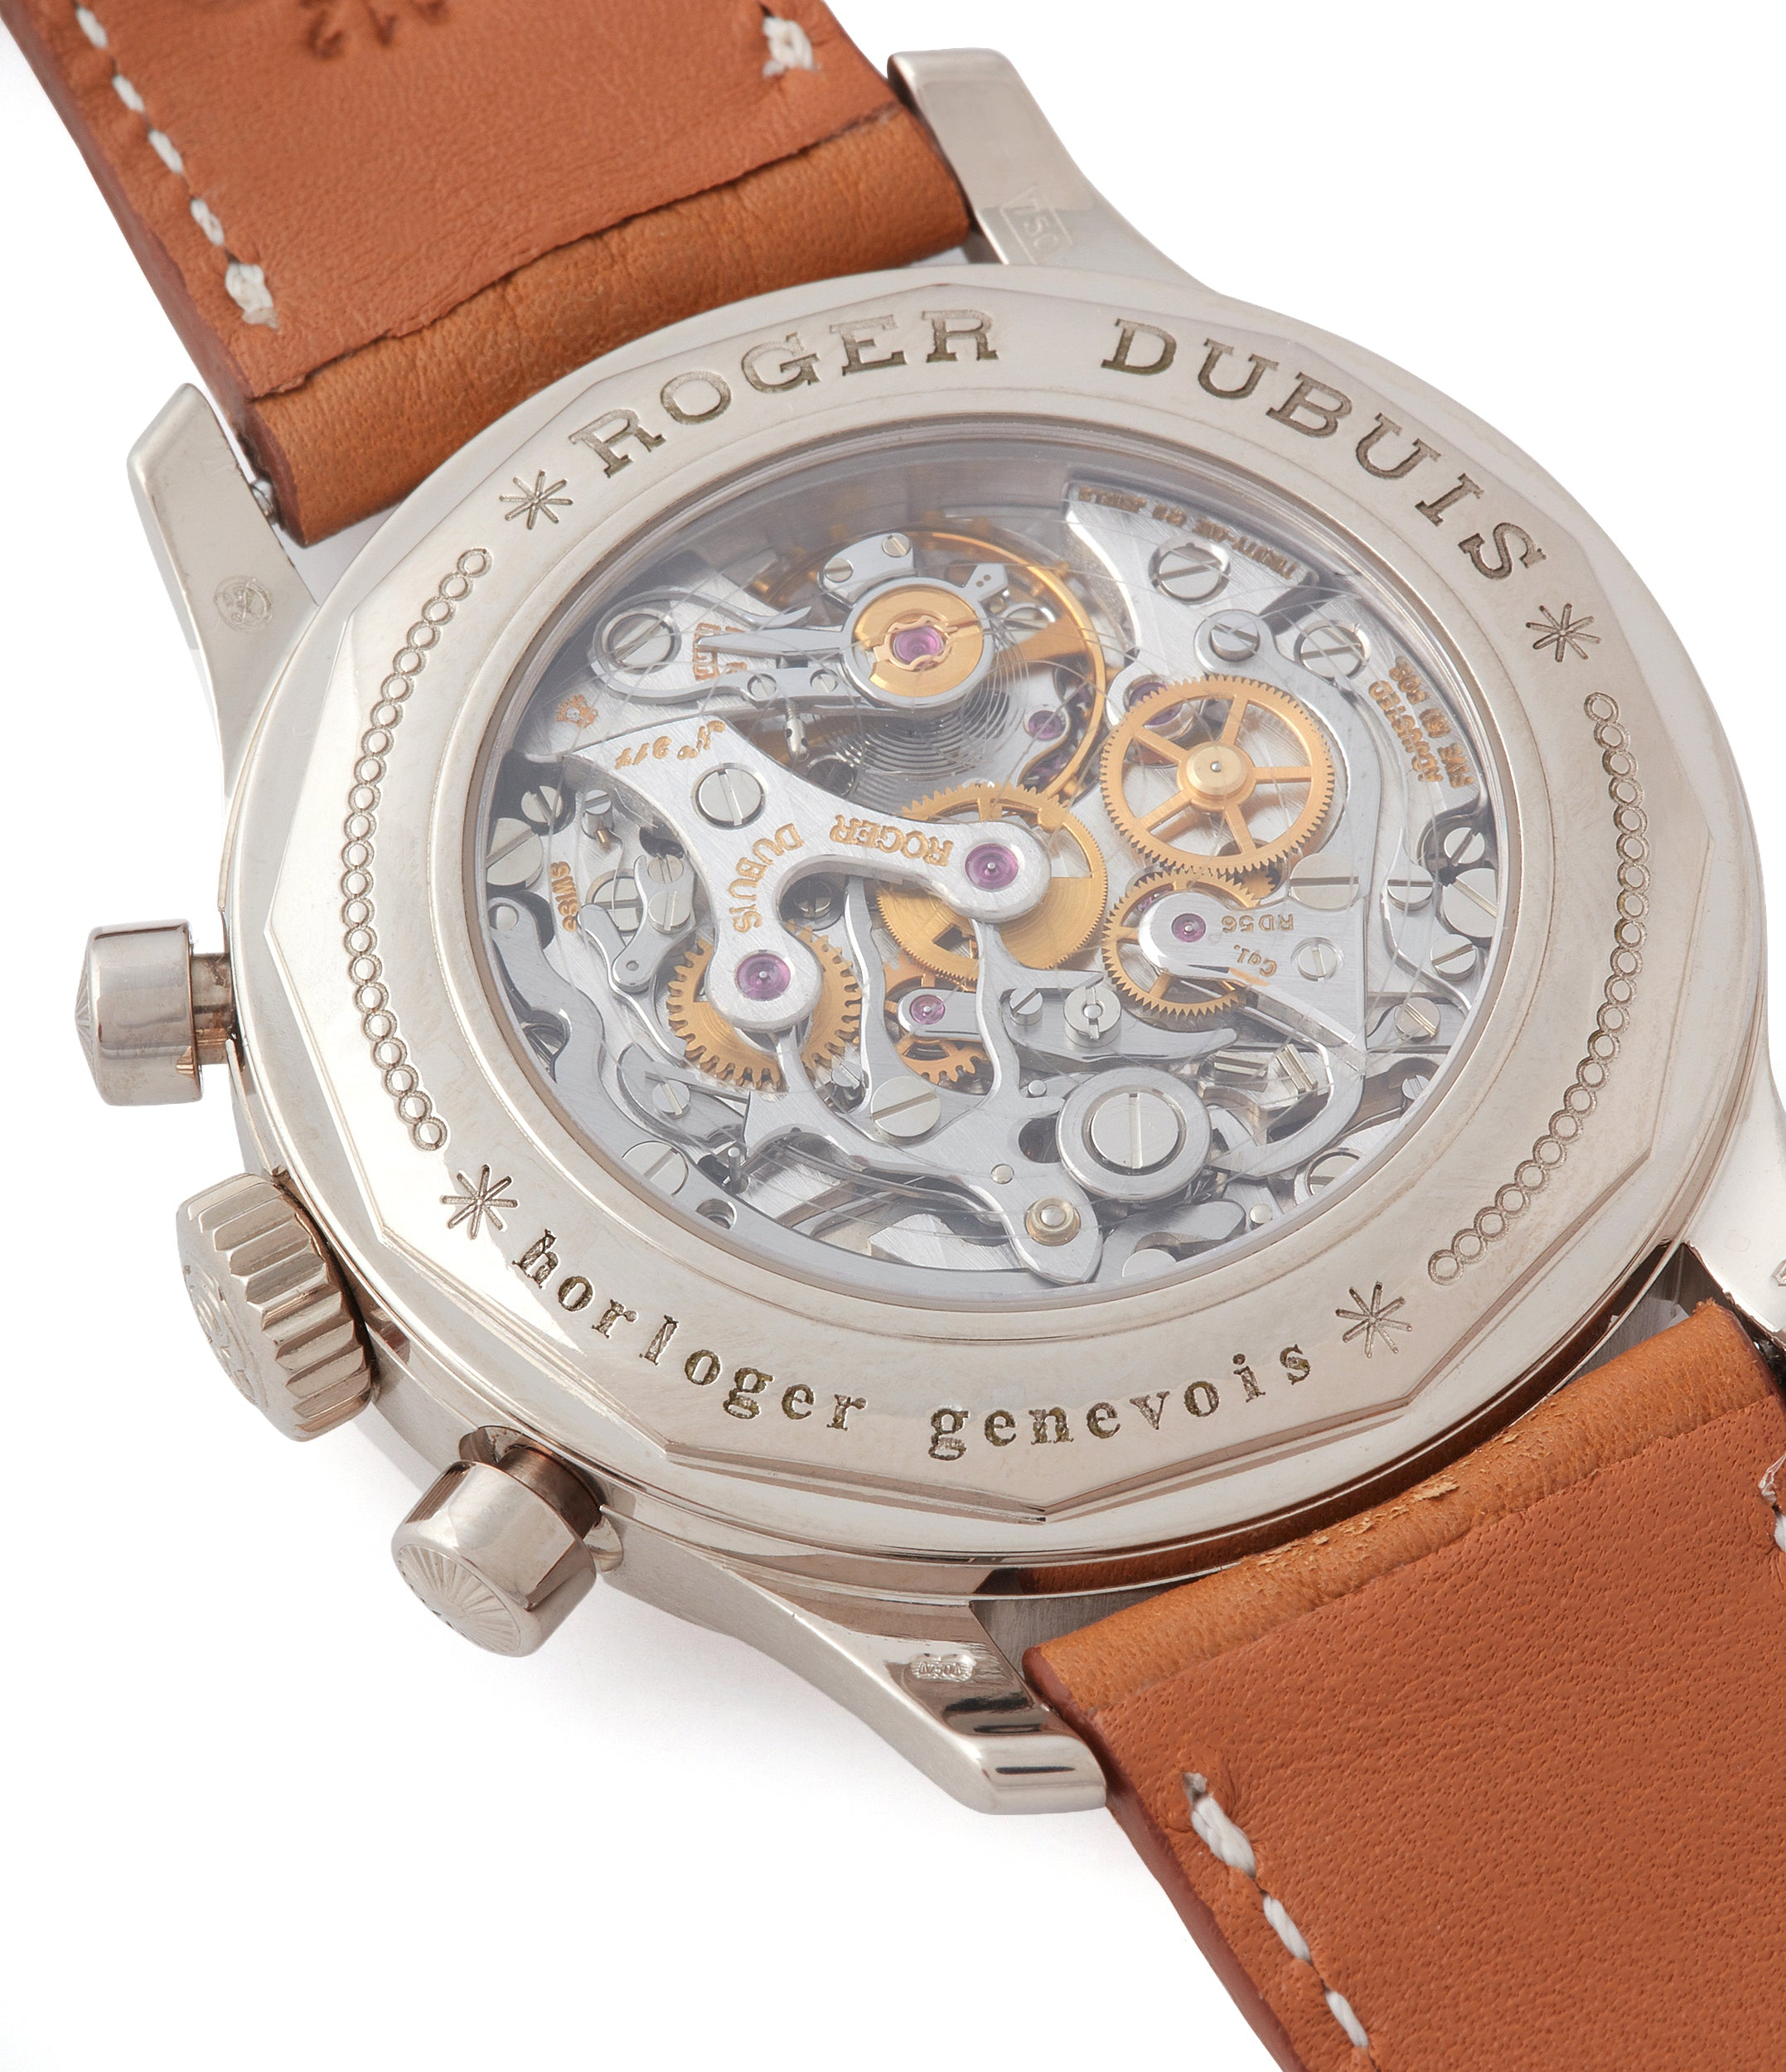 Besancon Observatory chronometer Roger Dubuis Hommage Chronograph white gold dress independent watchmaker